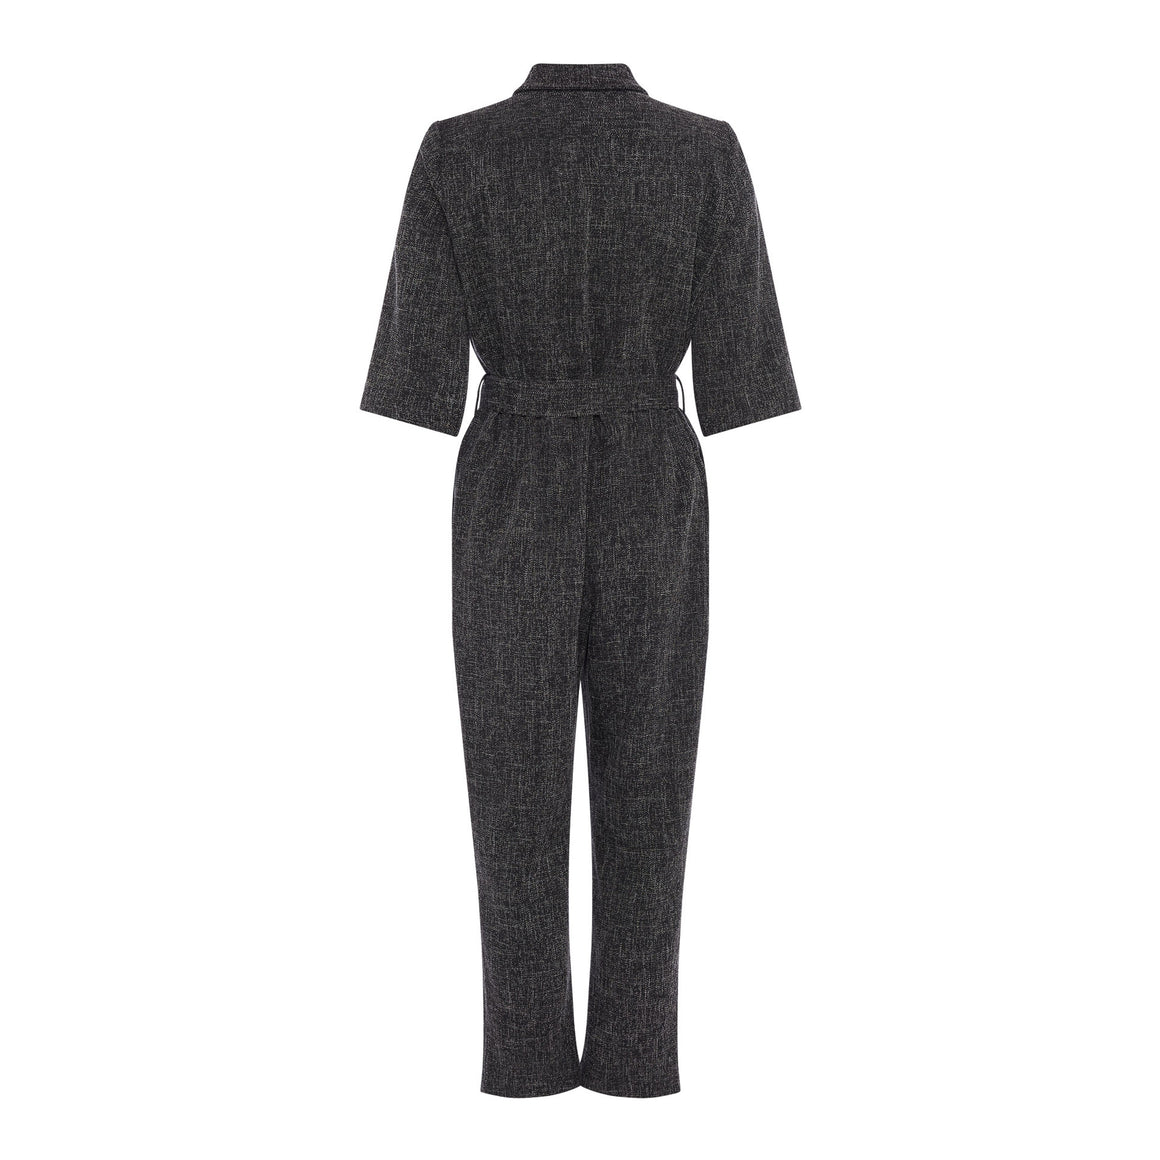 Modern Tweed Jumpsuit for Women in Black Multi